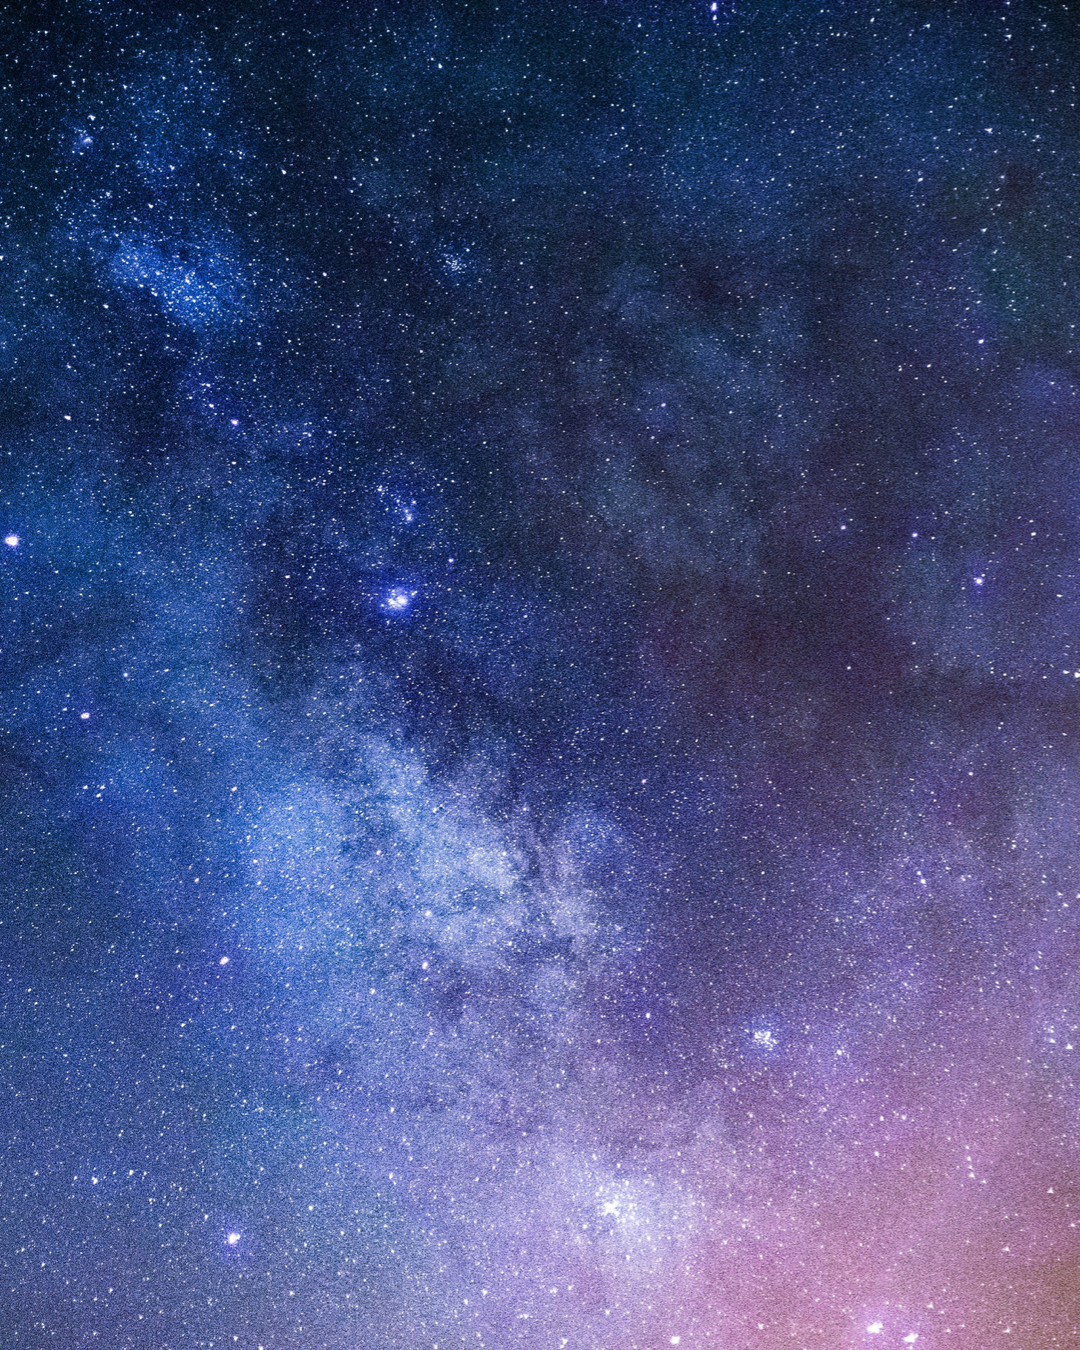 A deep blue night sky with stars and purple moments.